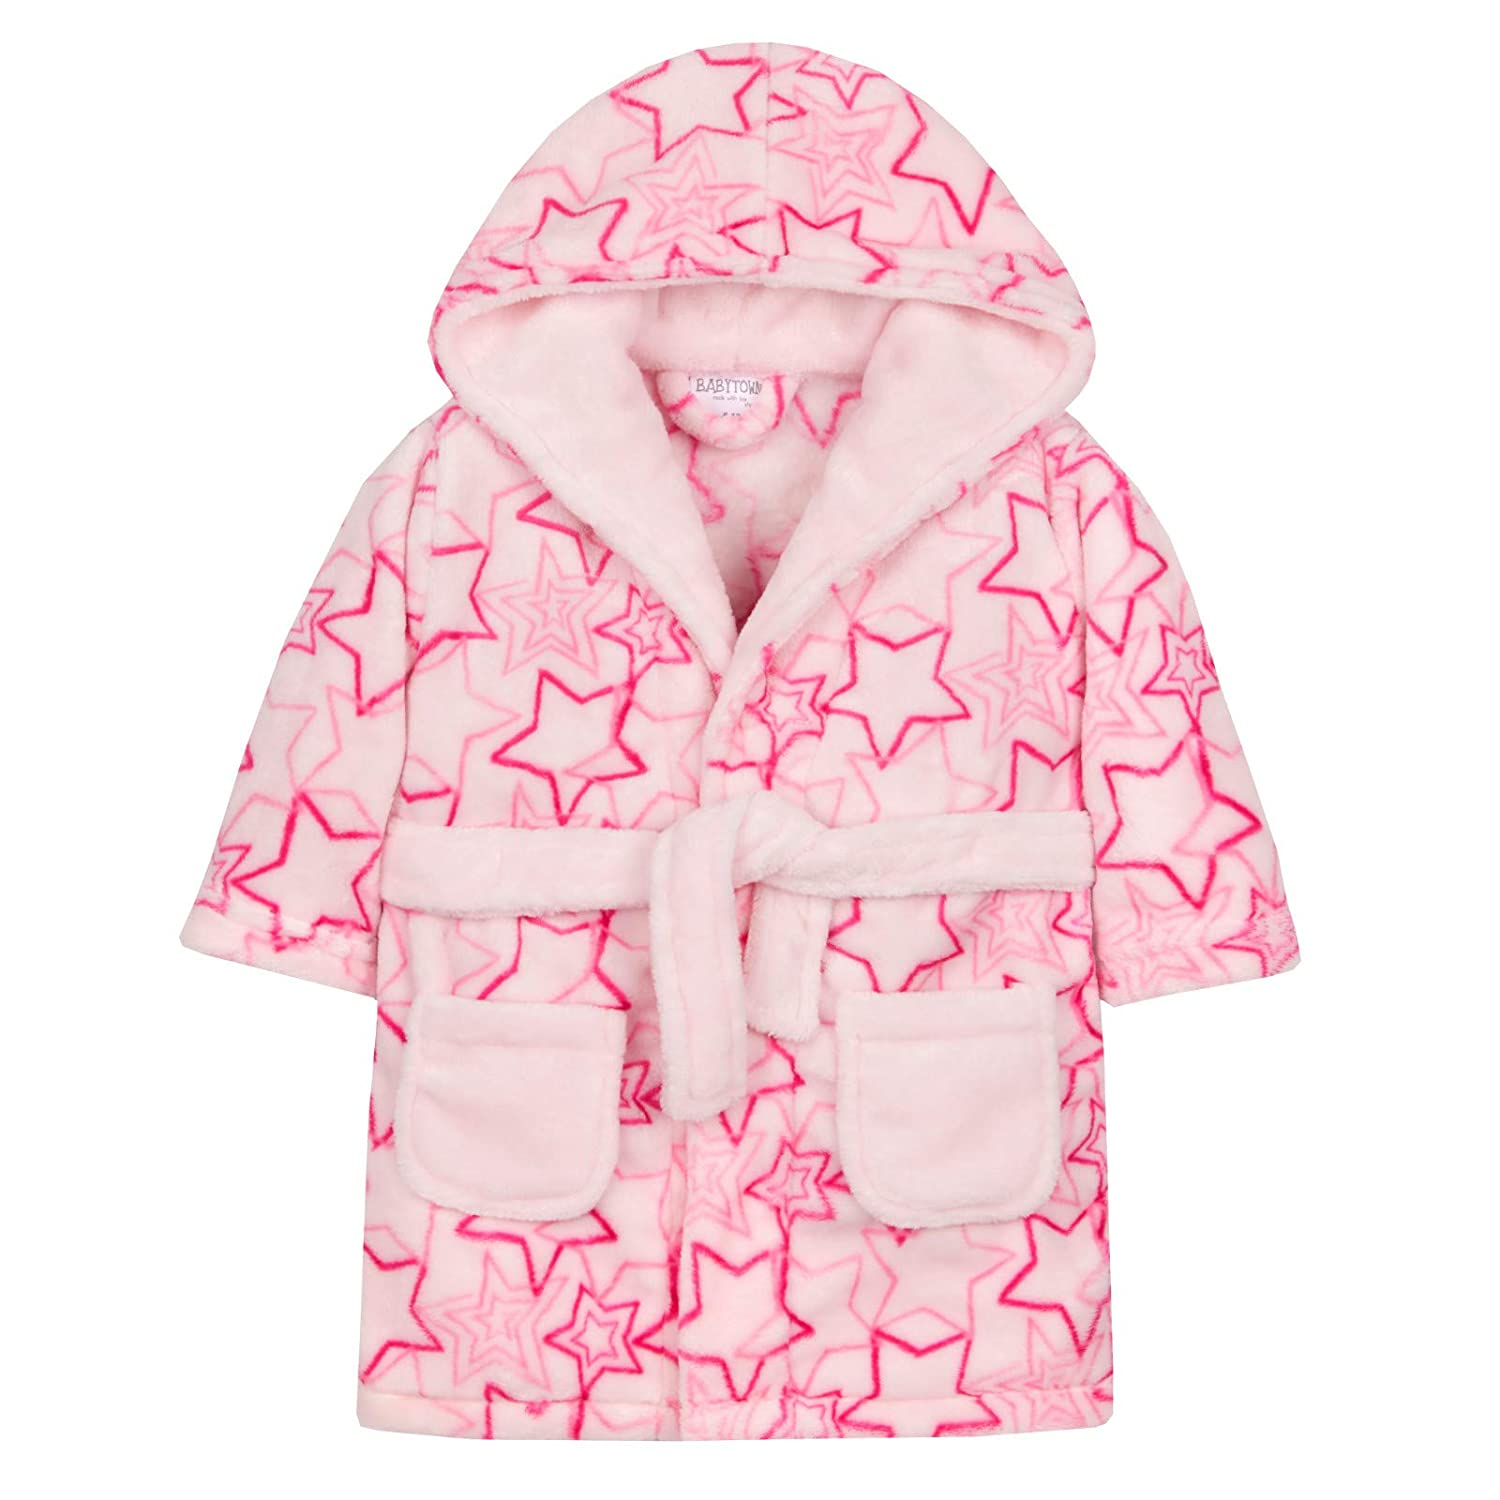 Lora Dora Baby Girls Pink Star Dressing Gown Shoe Directory LB101551